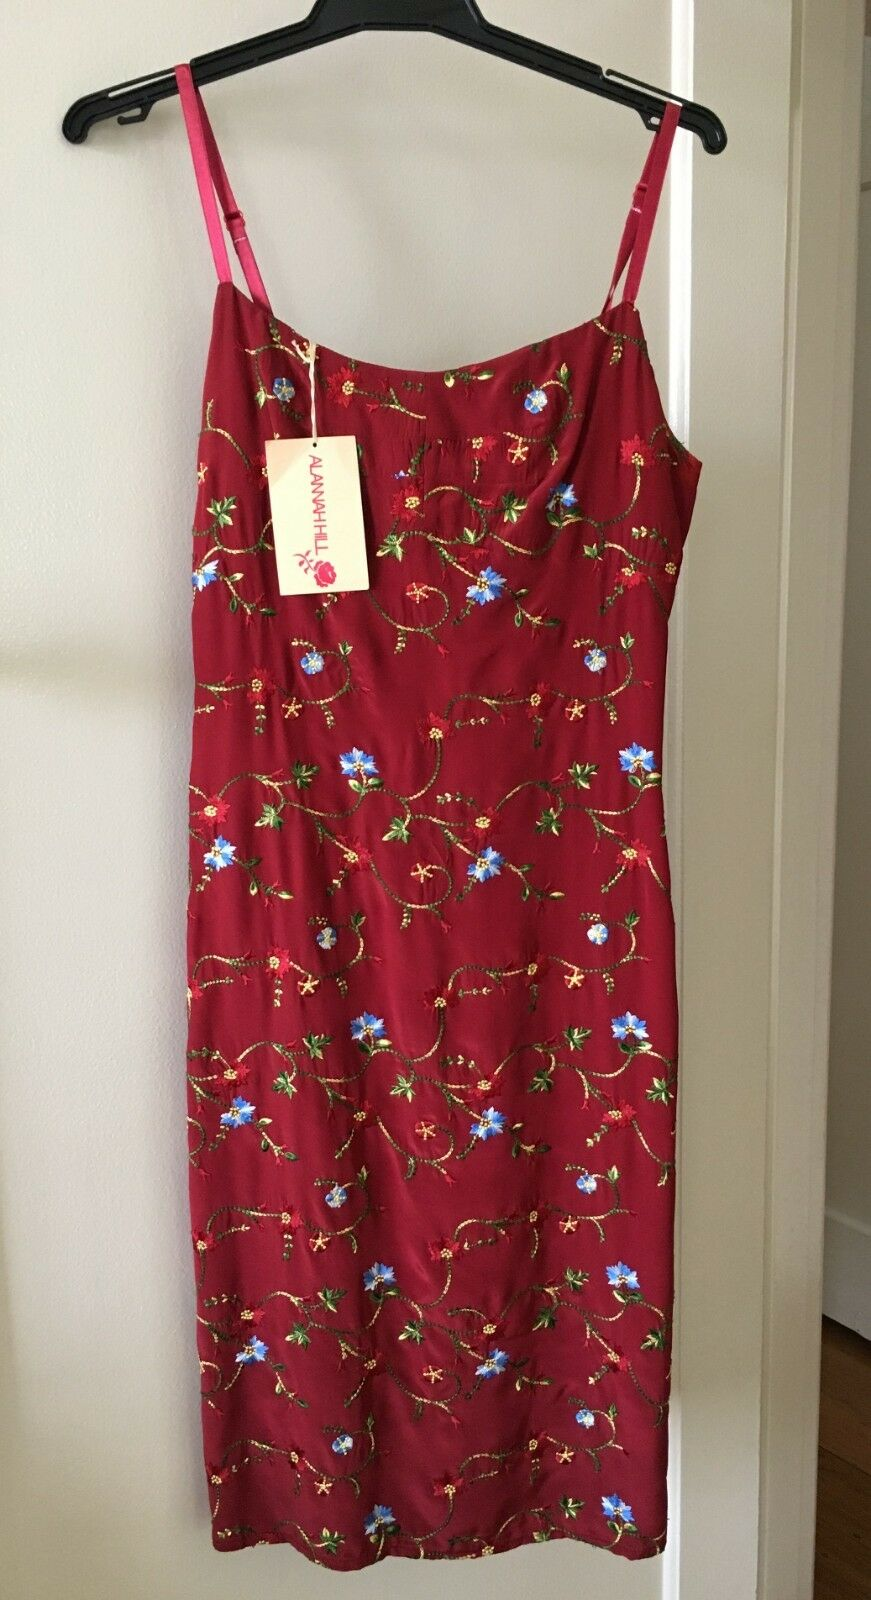 Alannah Hill vintage rot dress NEW Größe 8 originally